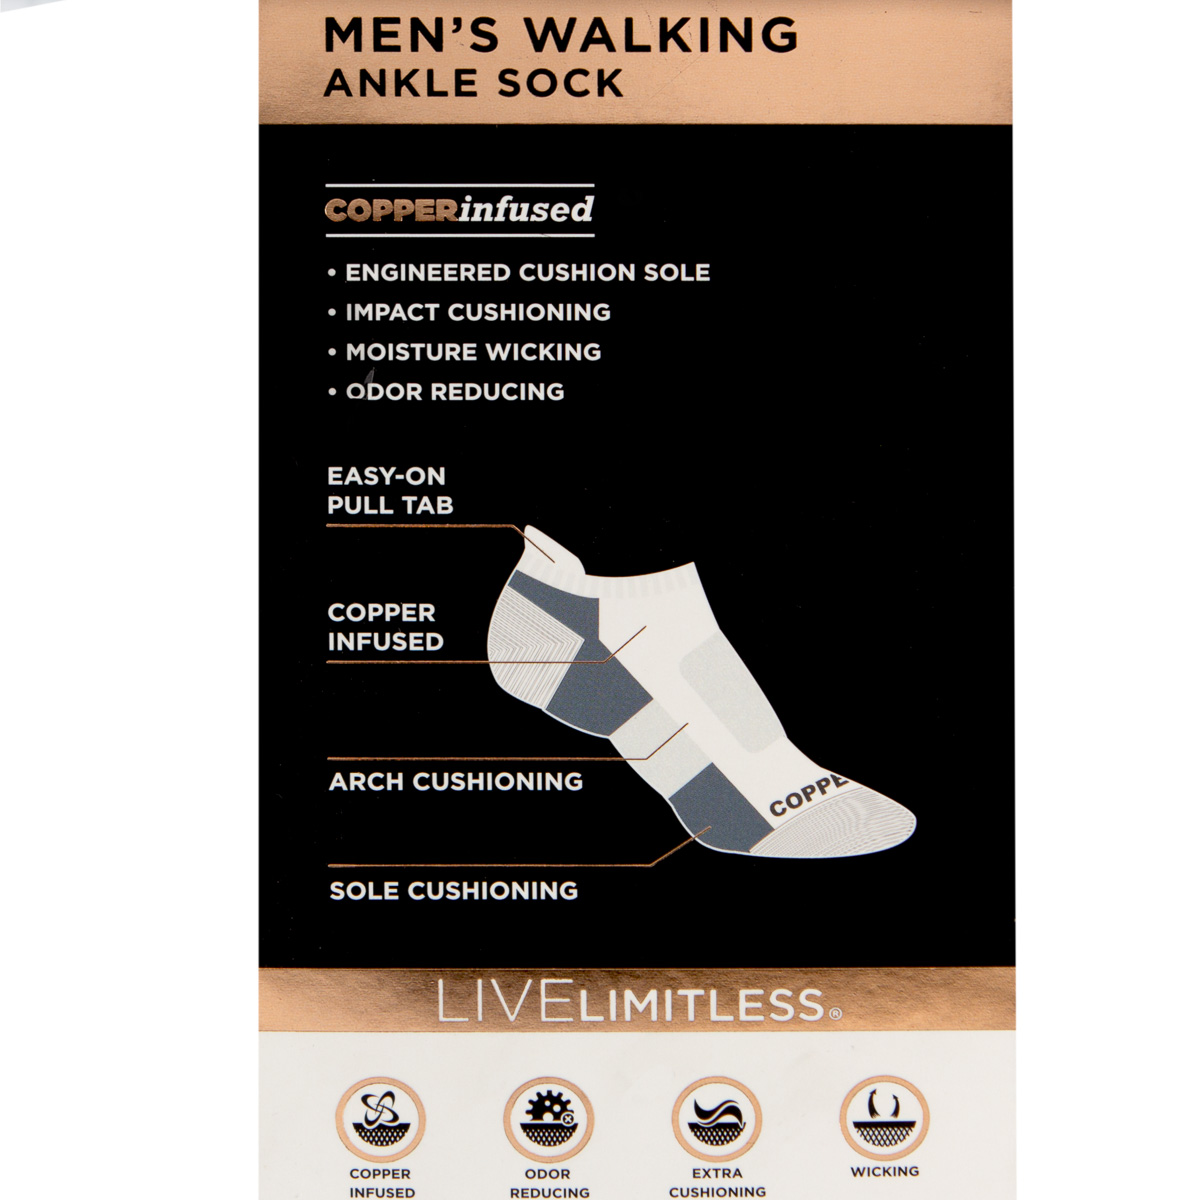 thumbnail 9 - 2-Pairs-Copper-Fit-Men-Walking-Ankle-Socks-Moisture-Wicking-Cushion-Compression